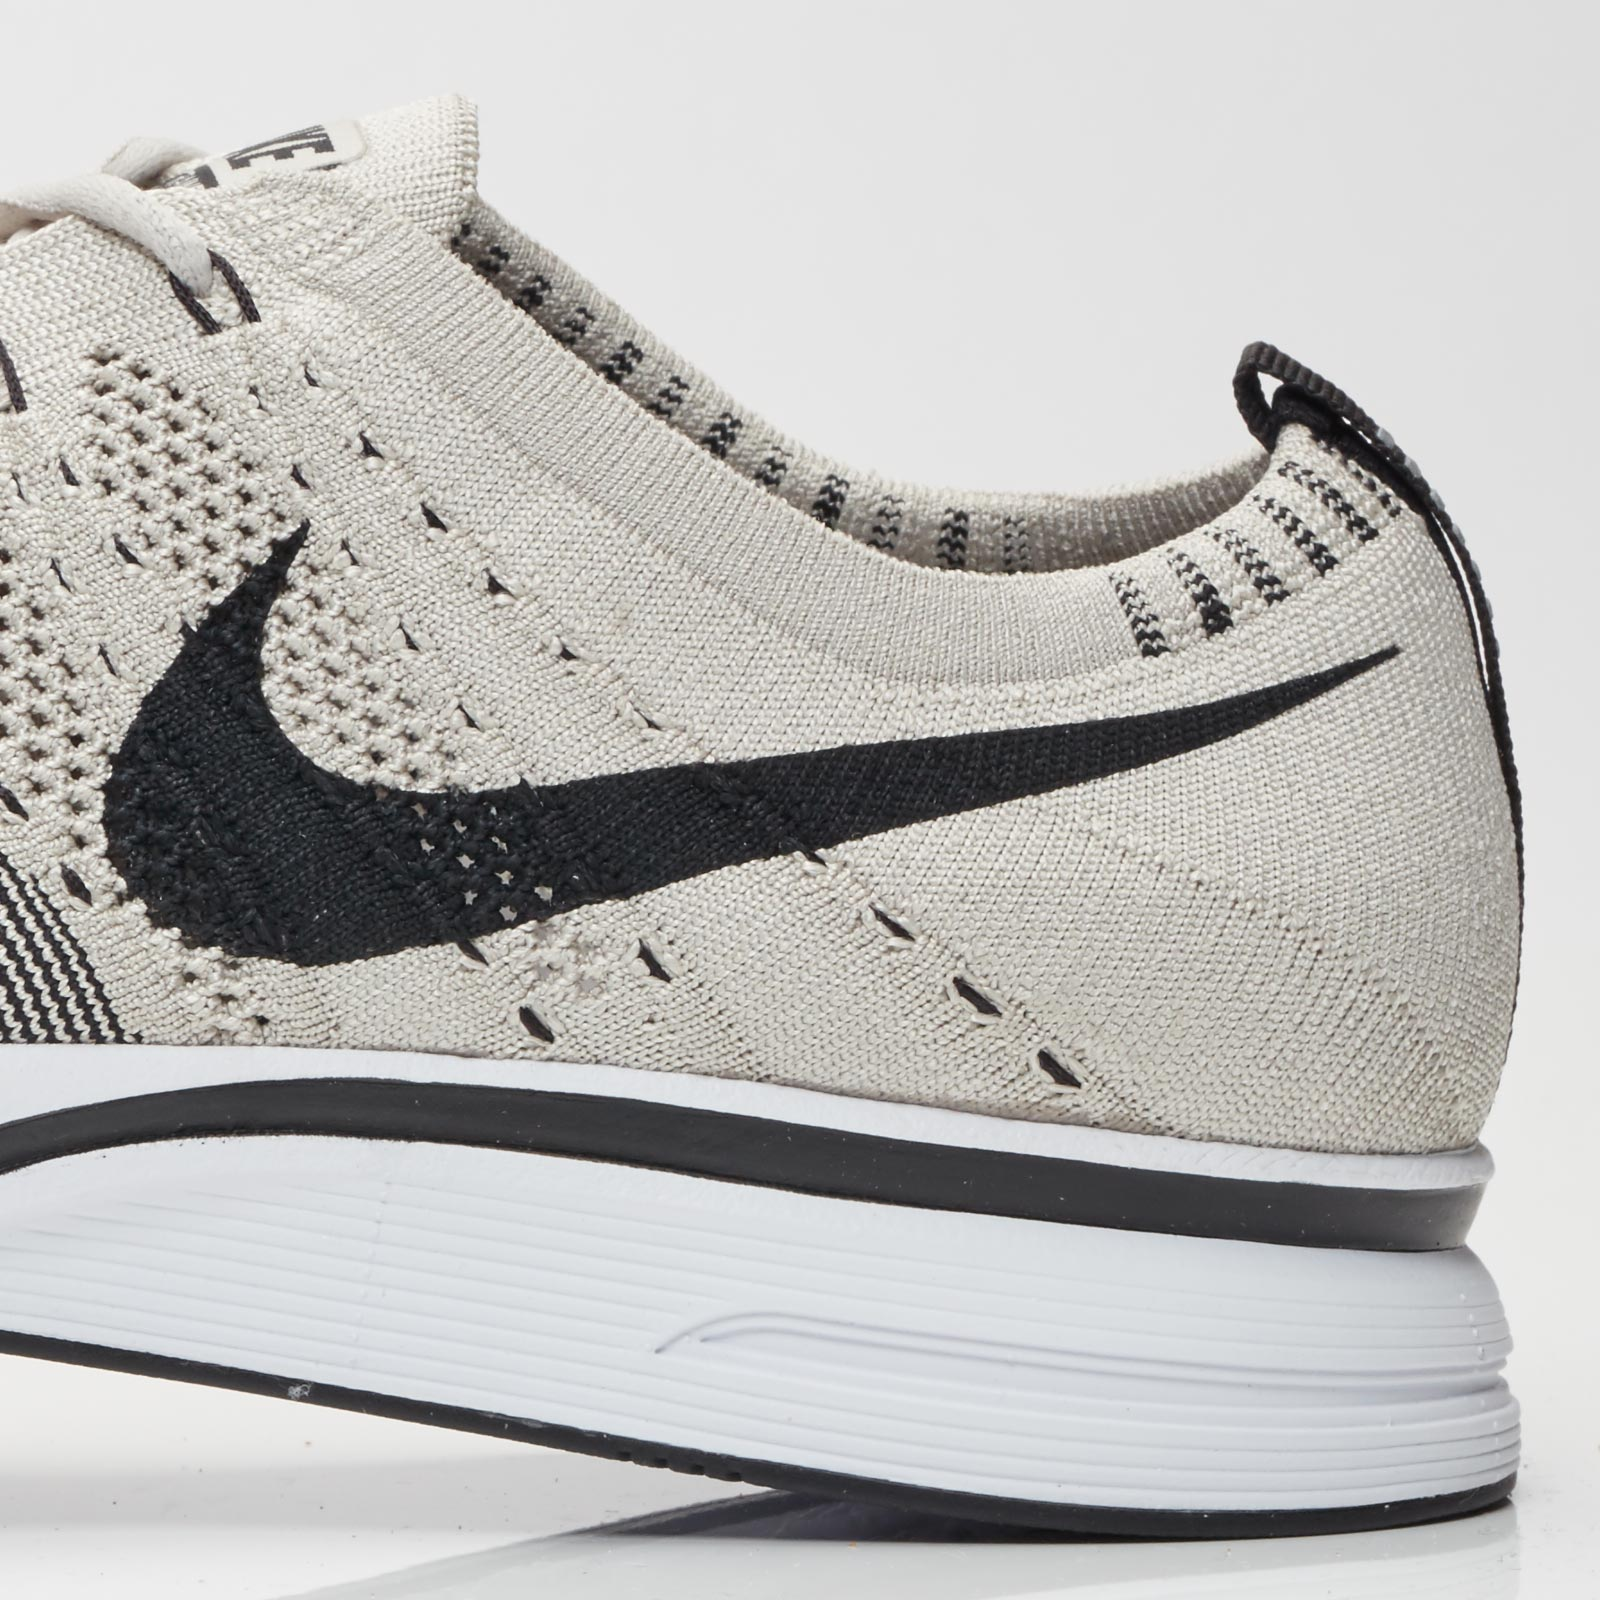 a4bbeac08ea3 ... inexpensive nike running flyknit trainer 8e2fd 2cfdf ...